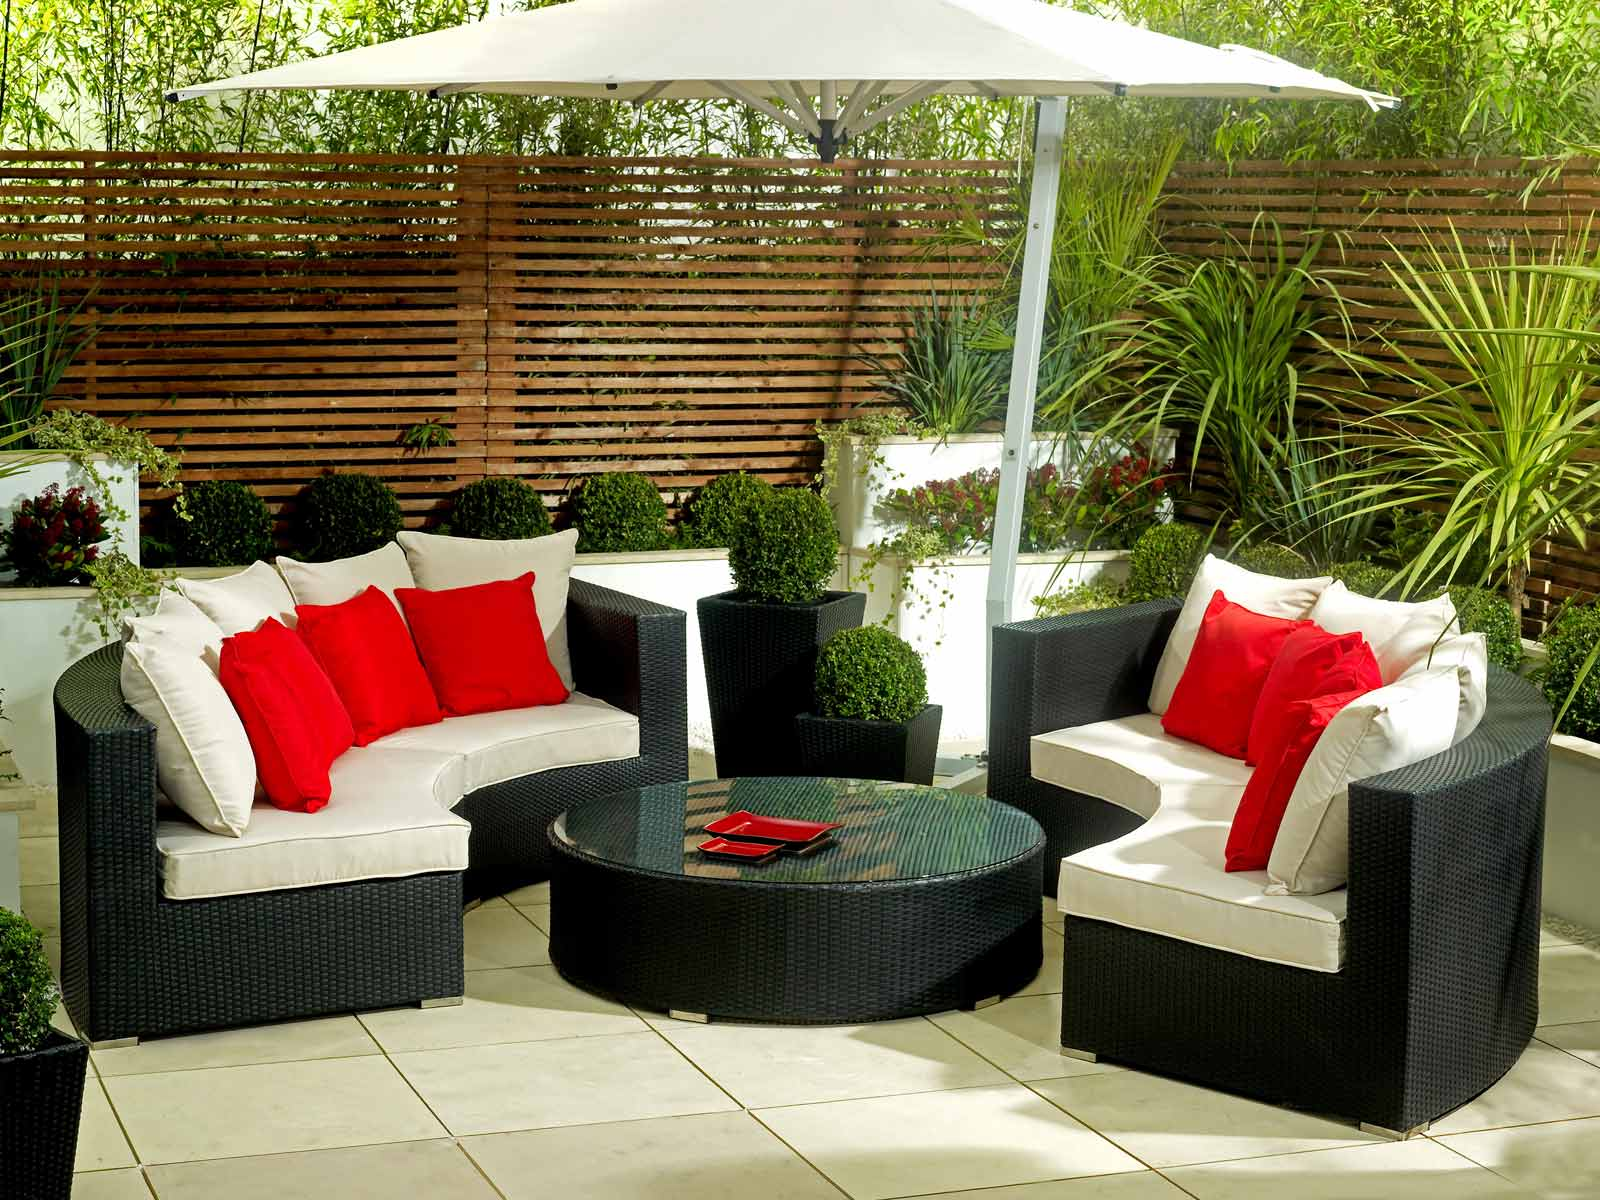 Furniture store sweet home furniture stores for Exterior furniture